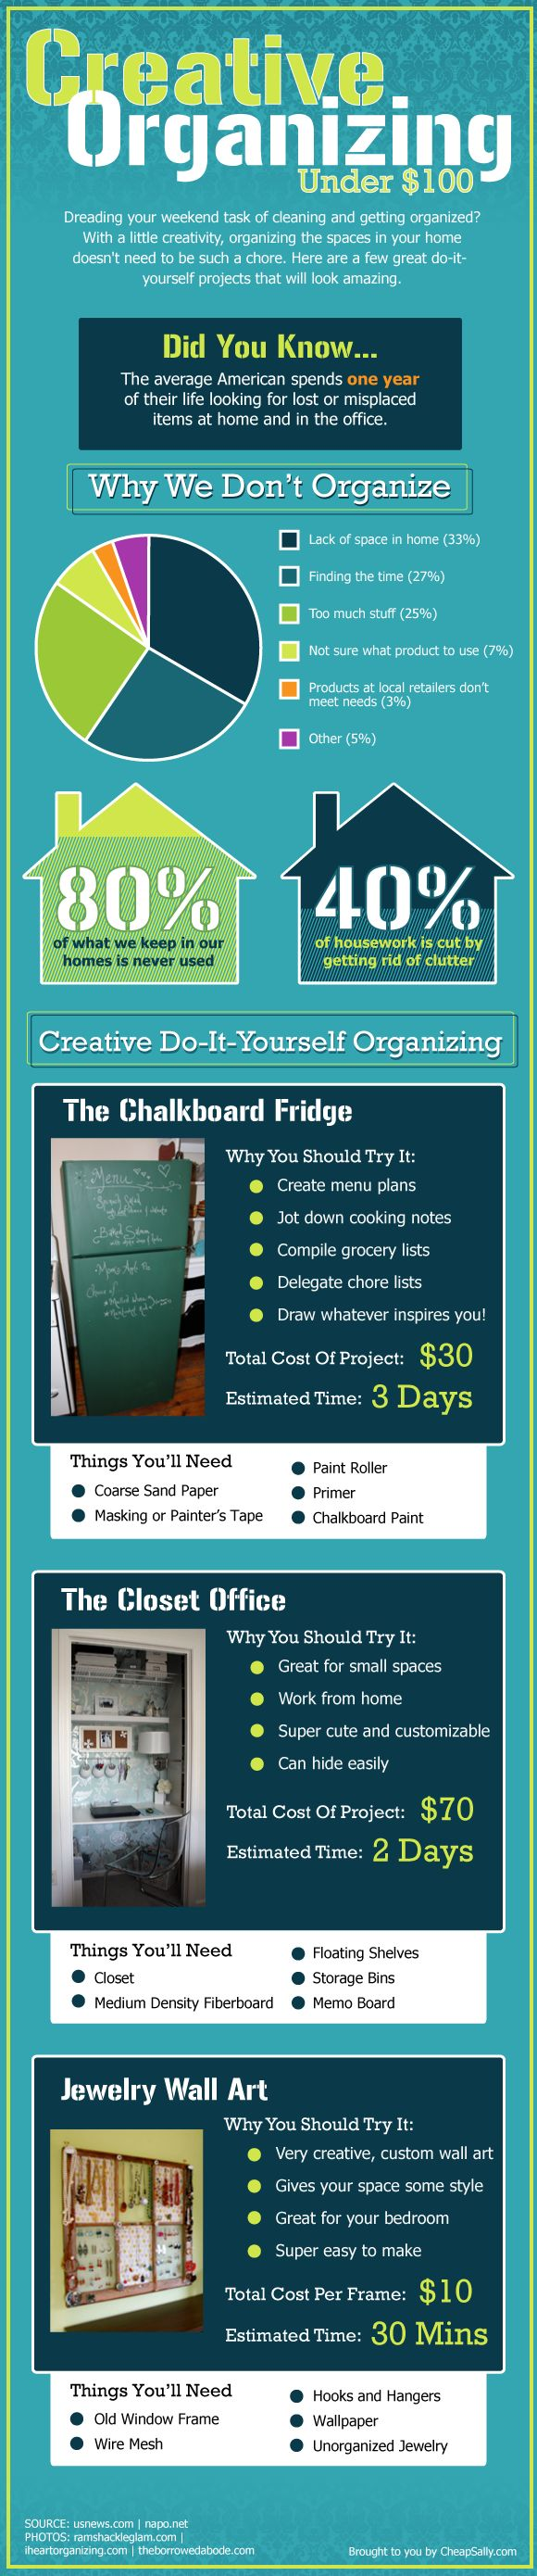 """Why we don't organize...I think """"lack of space"""" should be third and """"too much stuff"""" should be first, but I'm not the one in charge of the statistics!"""